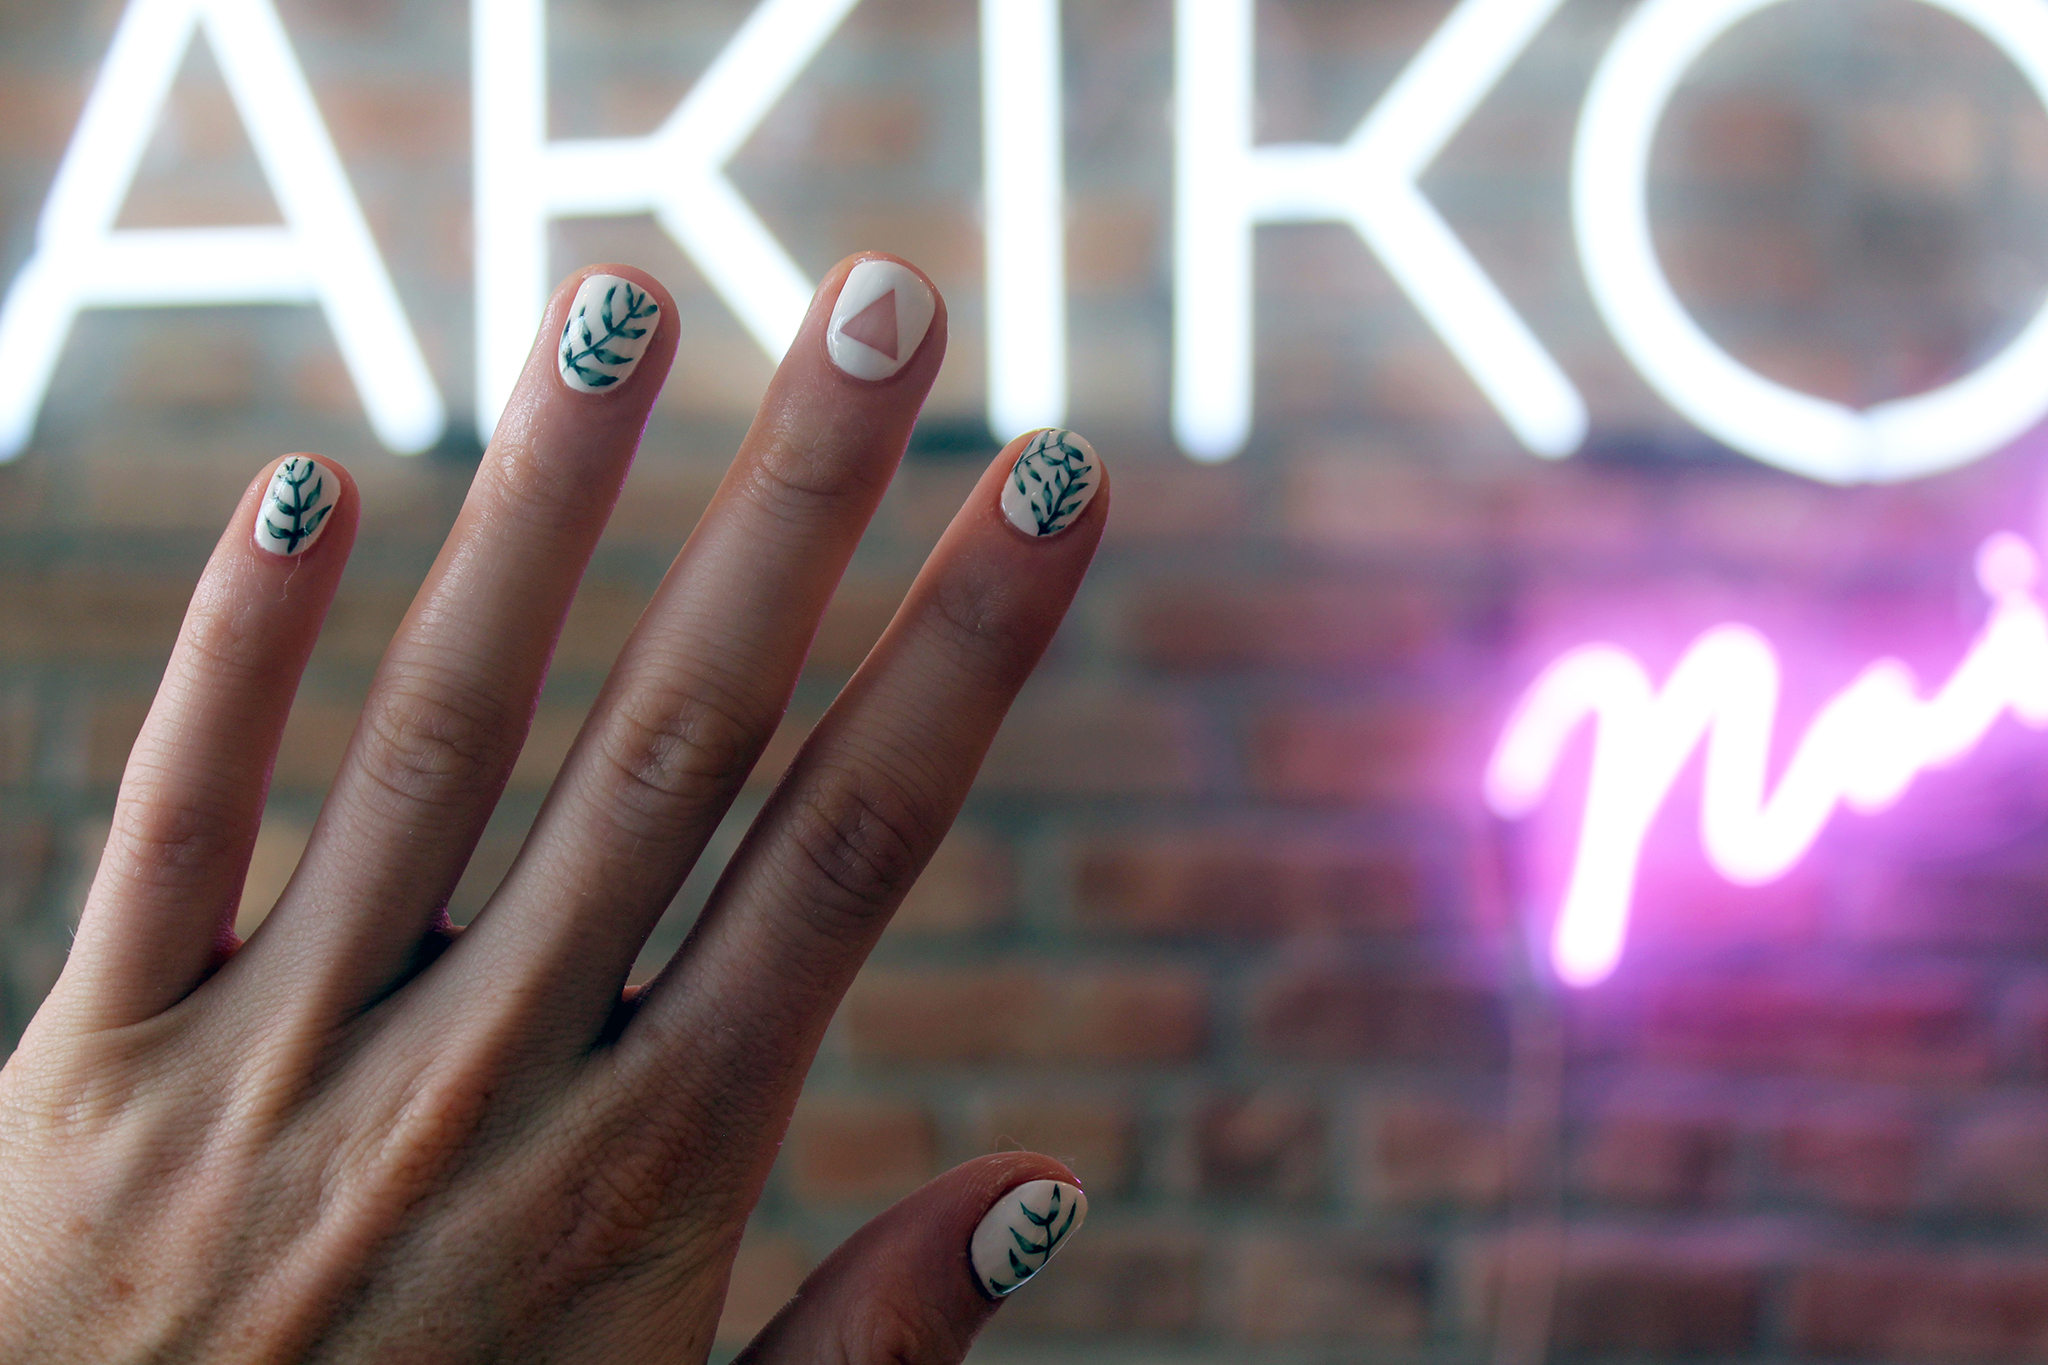 Nail salons in nyc for manicures pedicures and nail designs akiko nails nail salon solutioingenieria Gallery